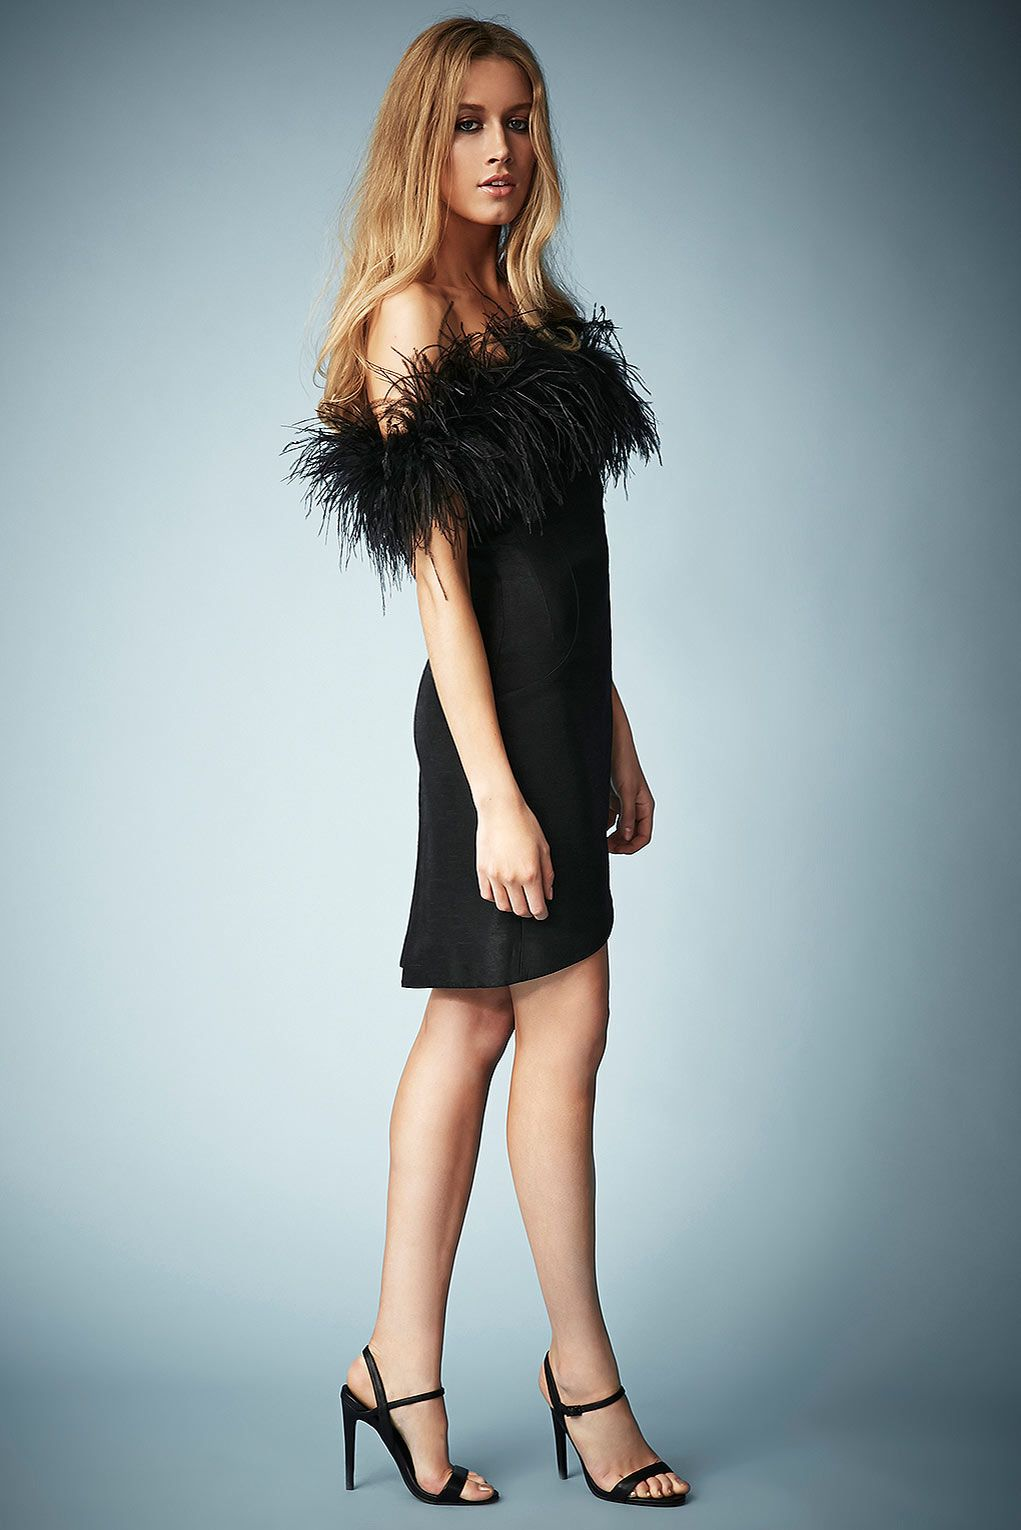 Feather Off Shoulder Cocktail Dress by Kate Moss for Topshop - Kate ...